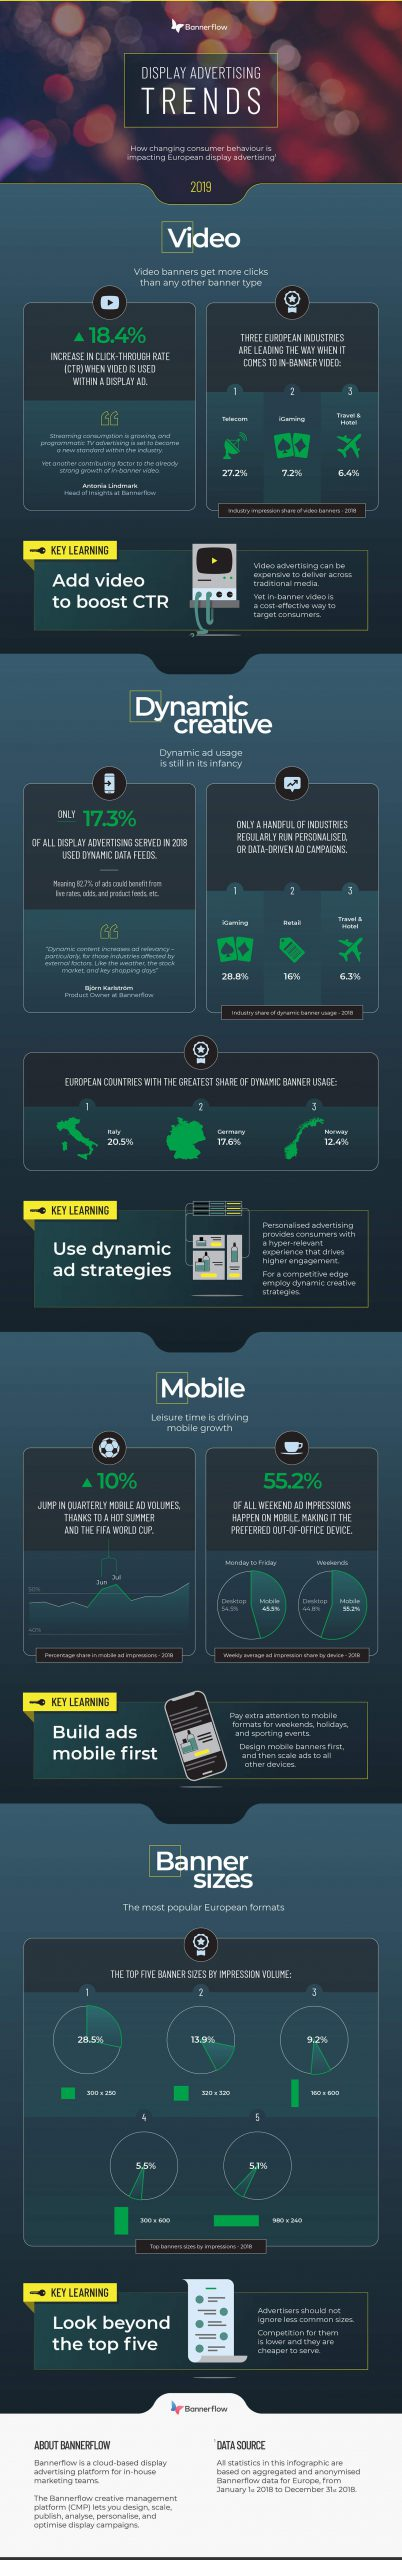 Display advertising trends 2019 infographic header Bannerflow